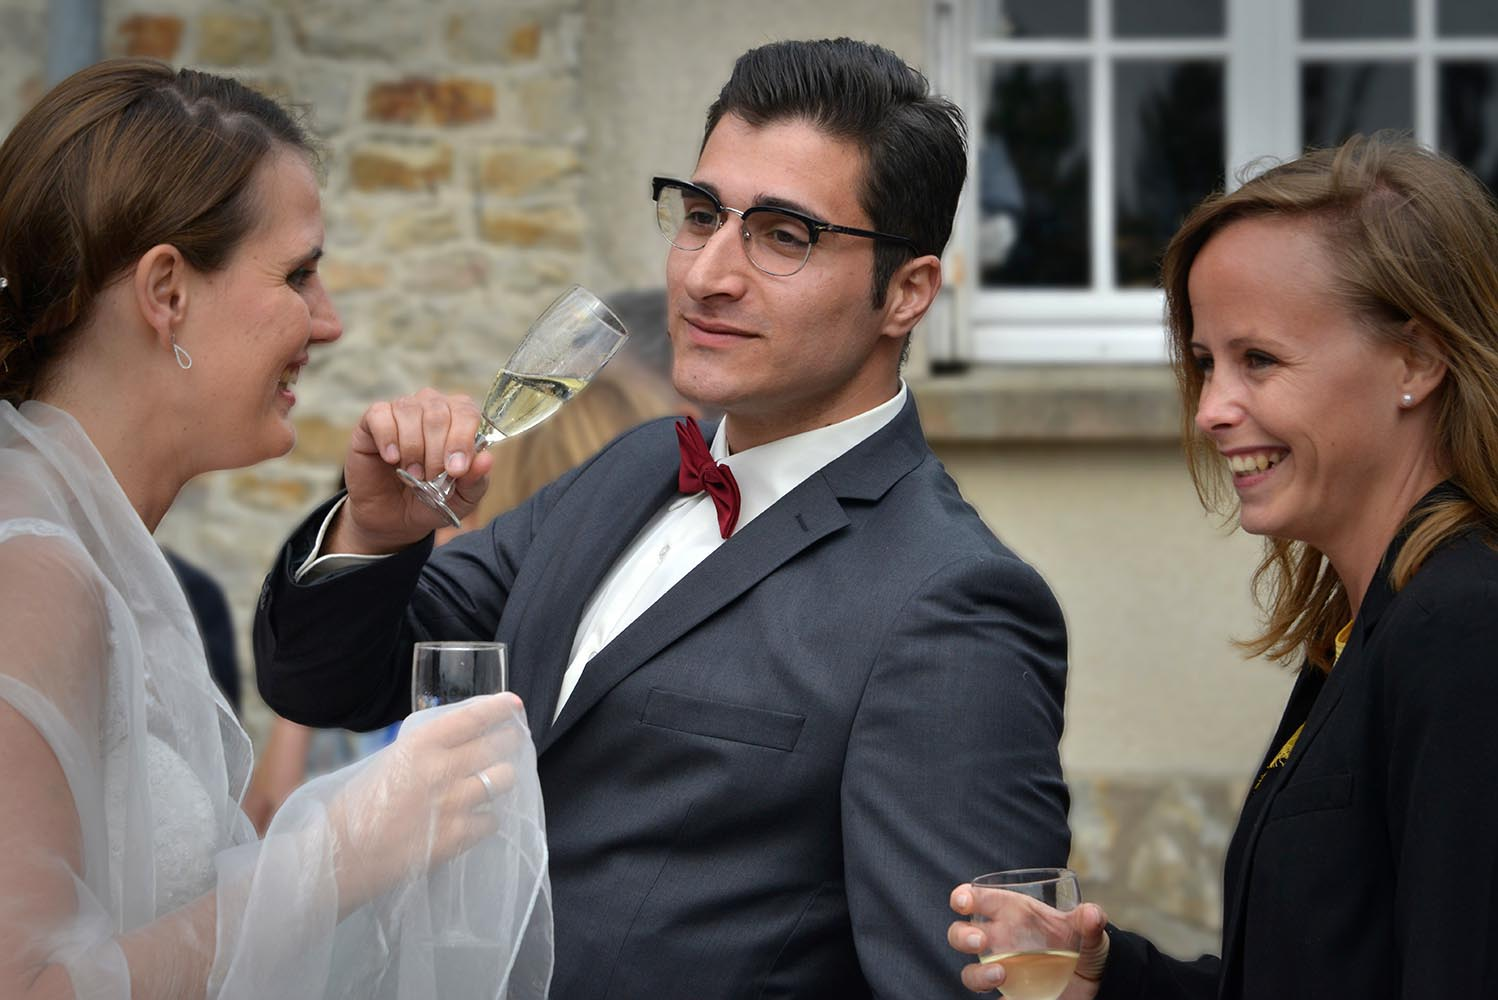 Man drinking champagne at wedding reception